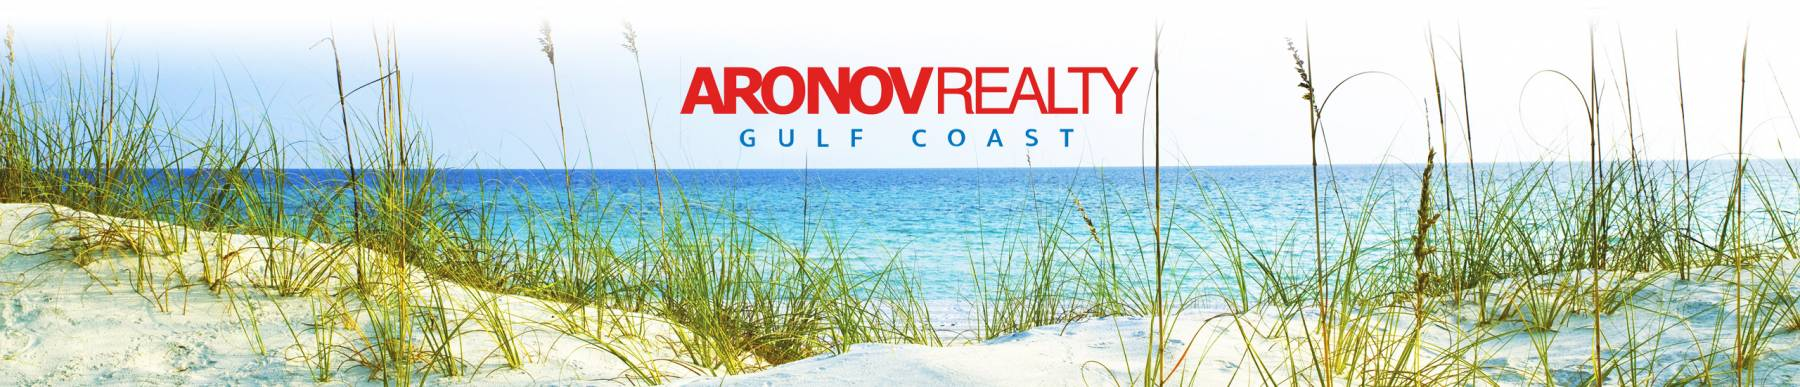 Aronov Realty Gulf Coast Vacation Rentals